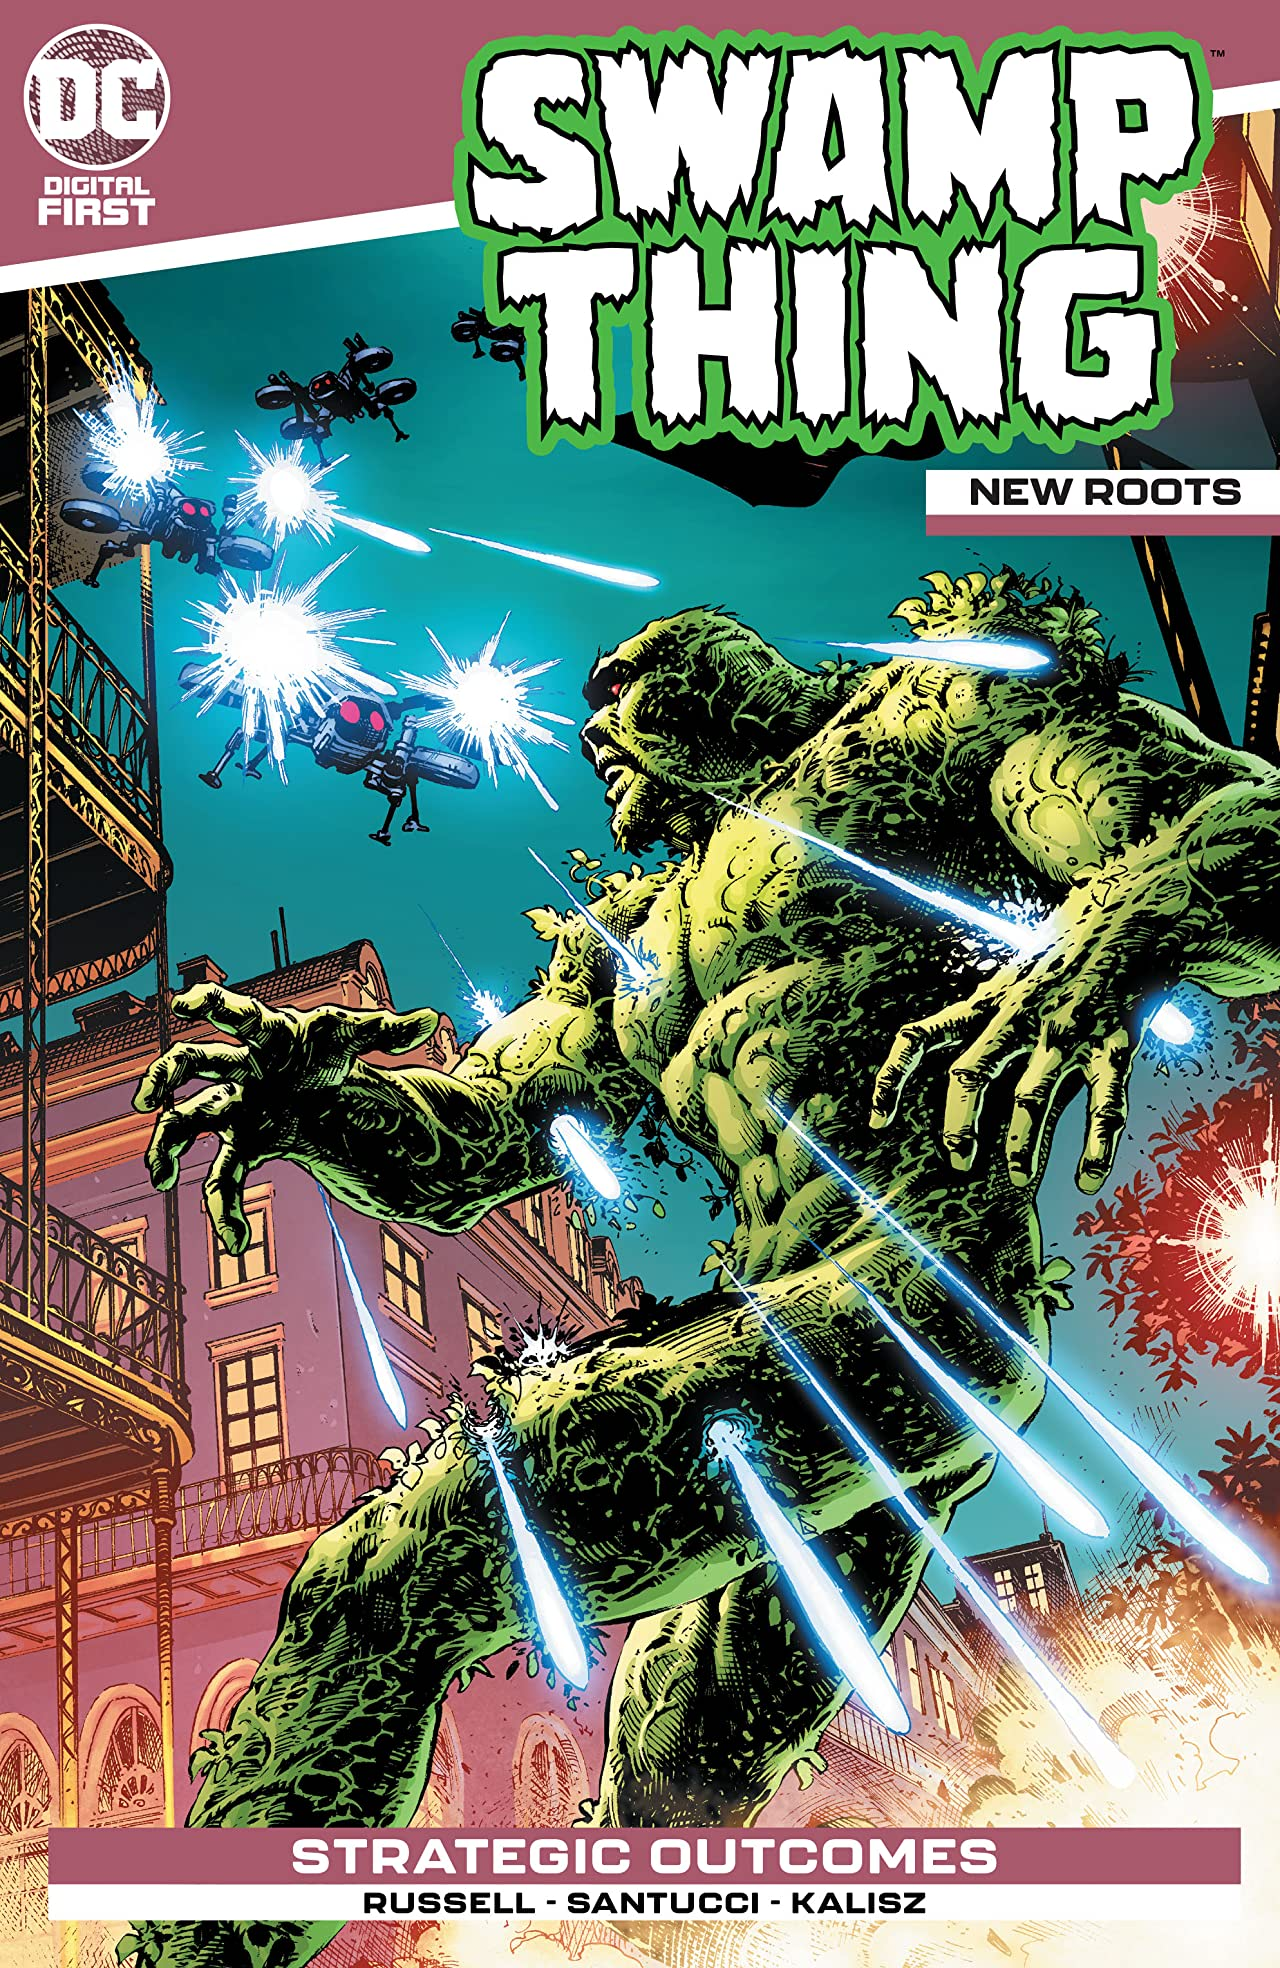 Swamp Thing: New Roots Vol 1 4 (Digital)